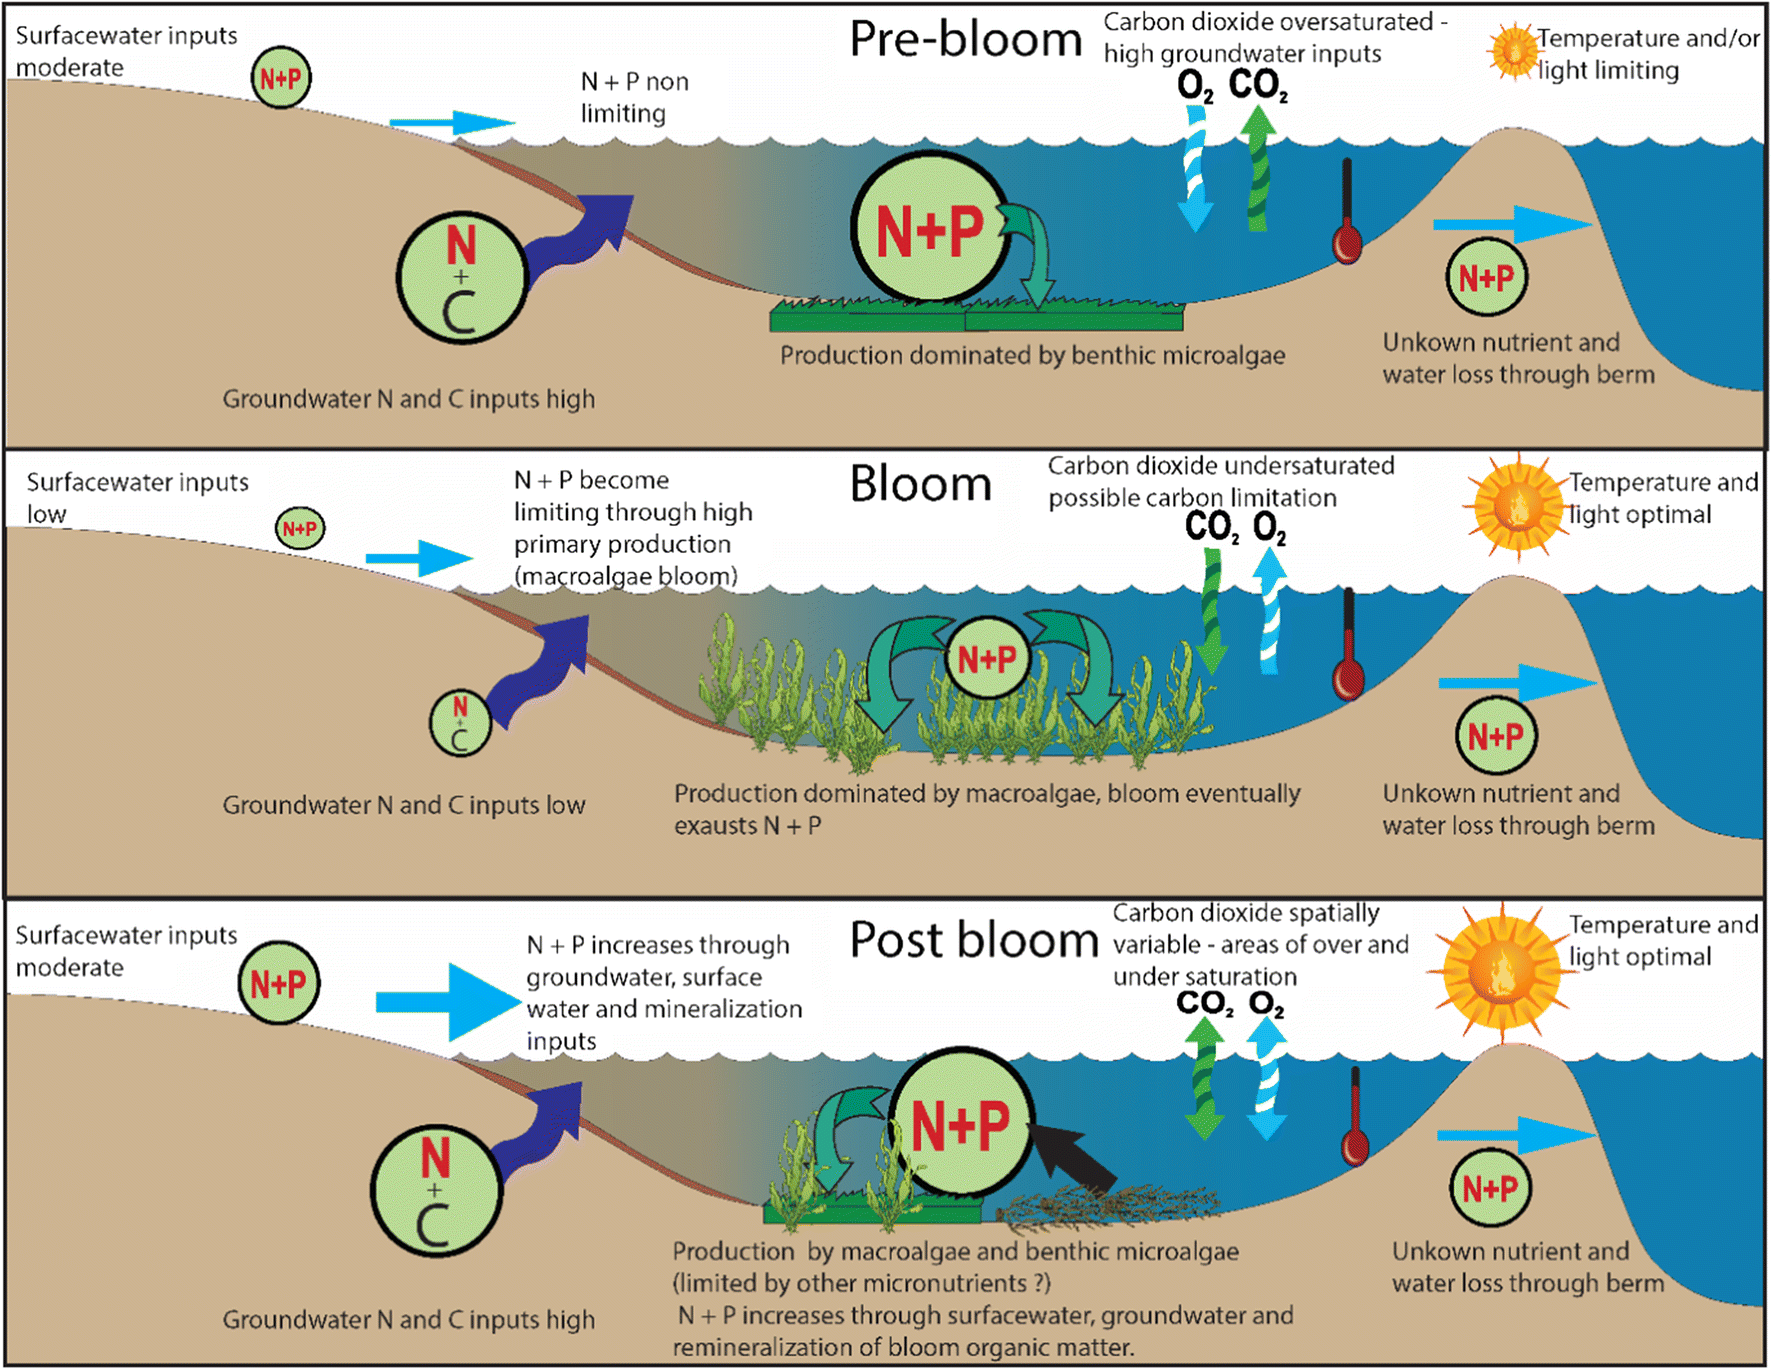 Hydrological Versus Biological Drivers of Nutrient and